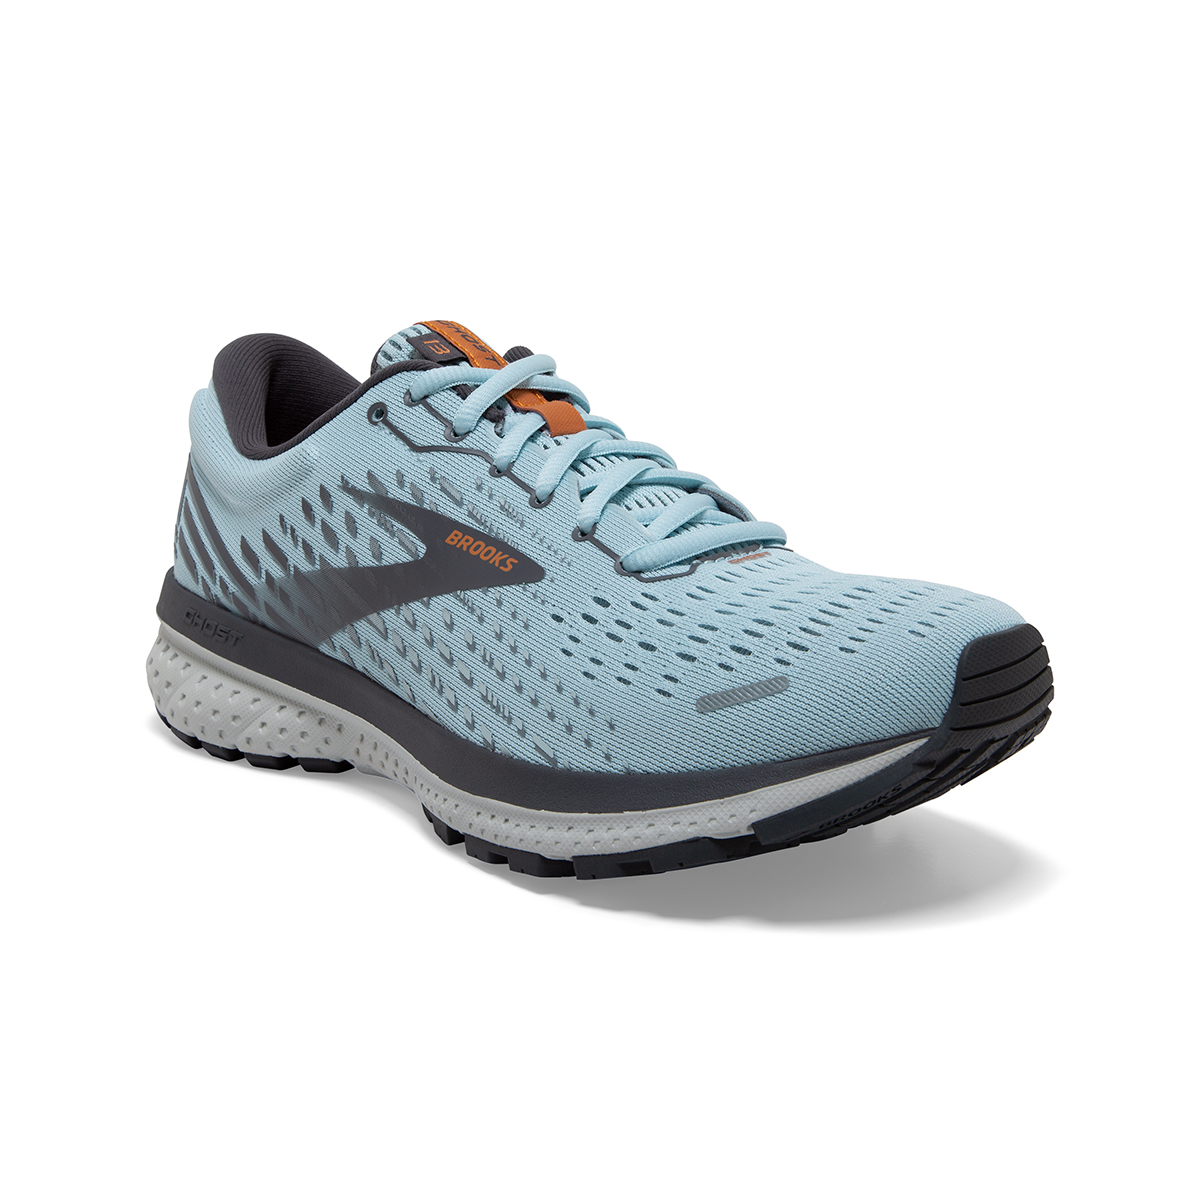 Women's Brooks Ghost 13 Running Shoe - Color: Light Blue/Black - Size: 5 - Width: Regular, Light Blue/Black, large, image 4